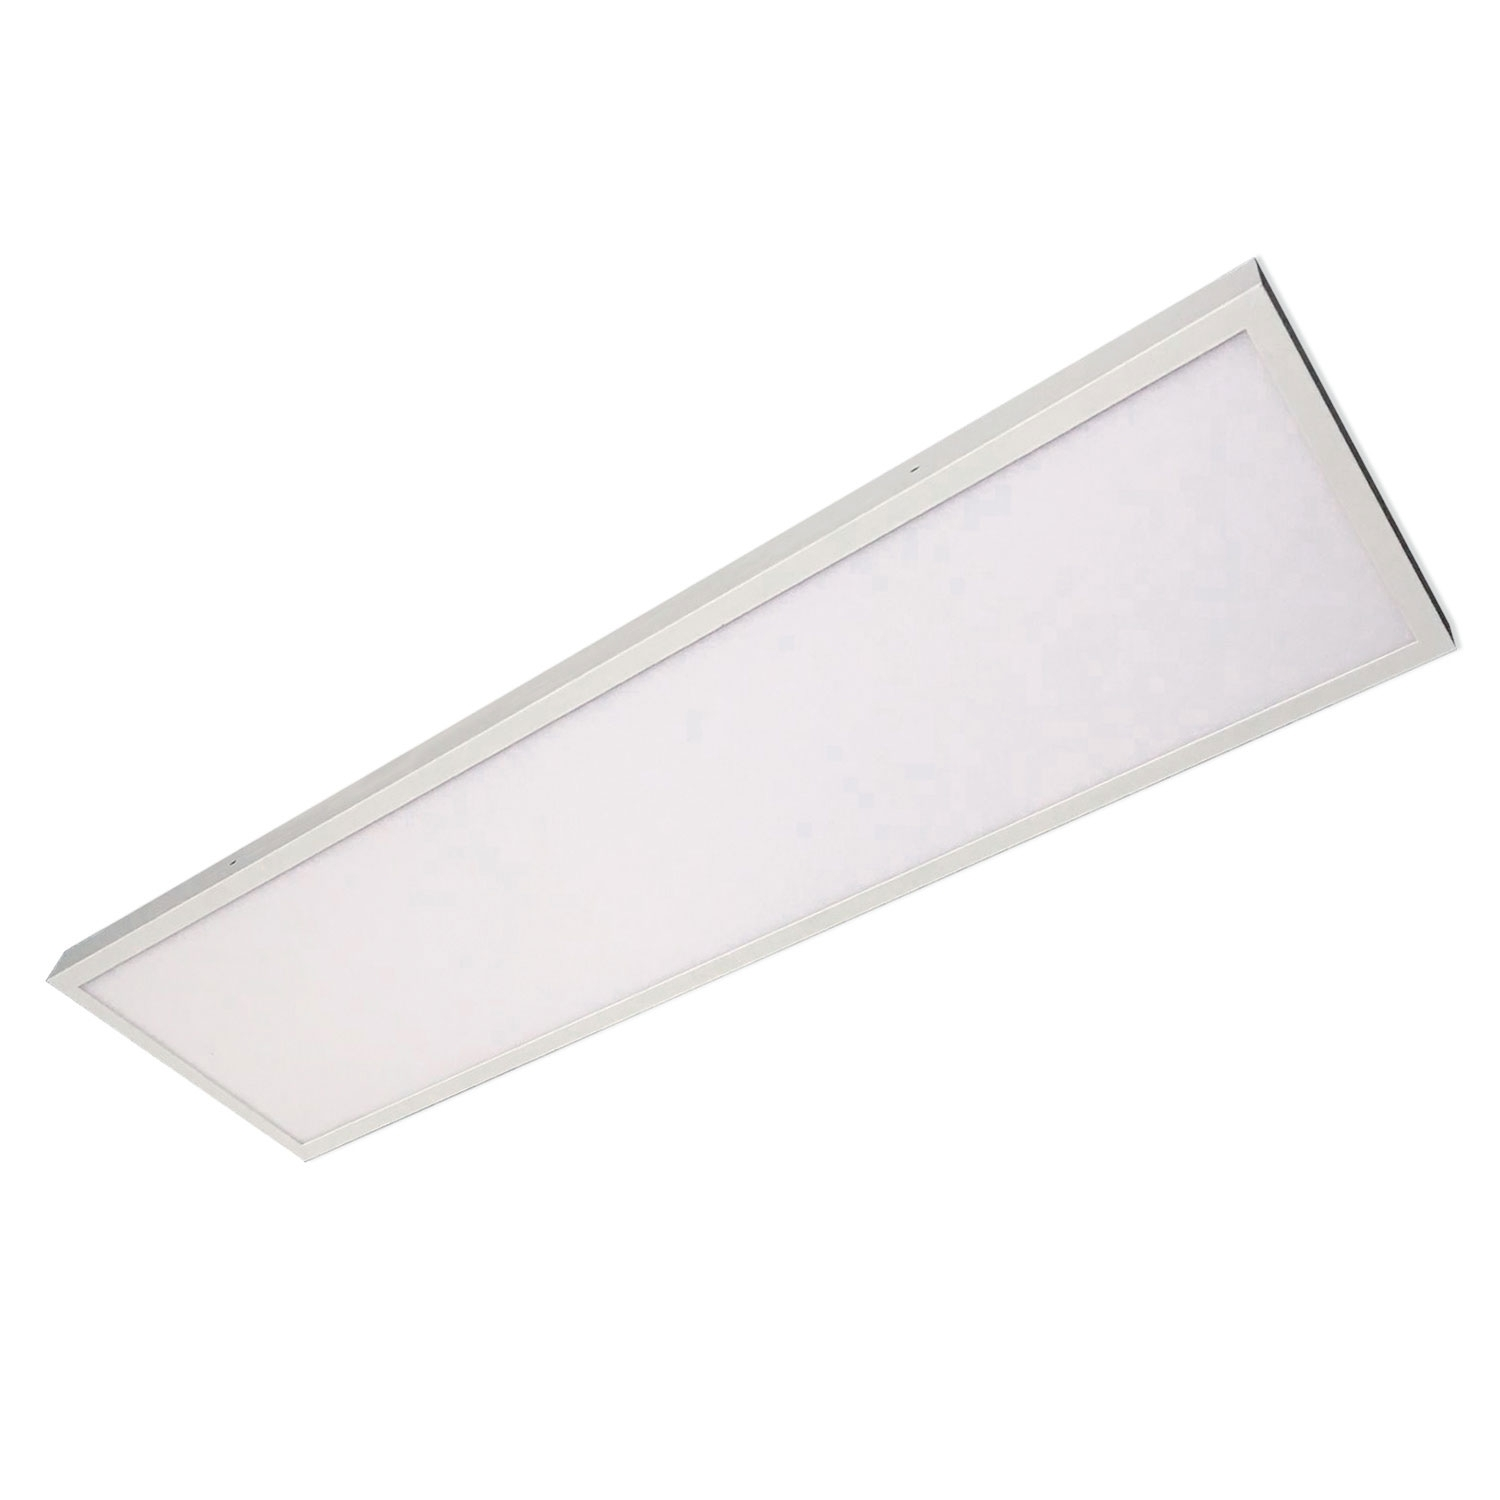 Plaf n superficie rectangular led jeremy 48w 4000k for Plafon led cocina rectangular